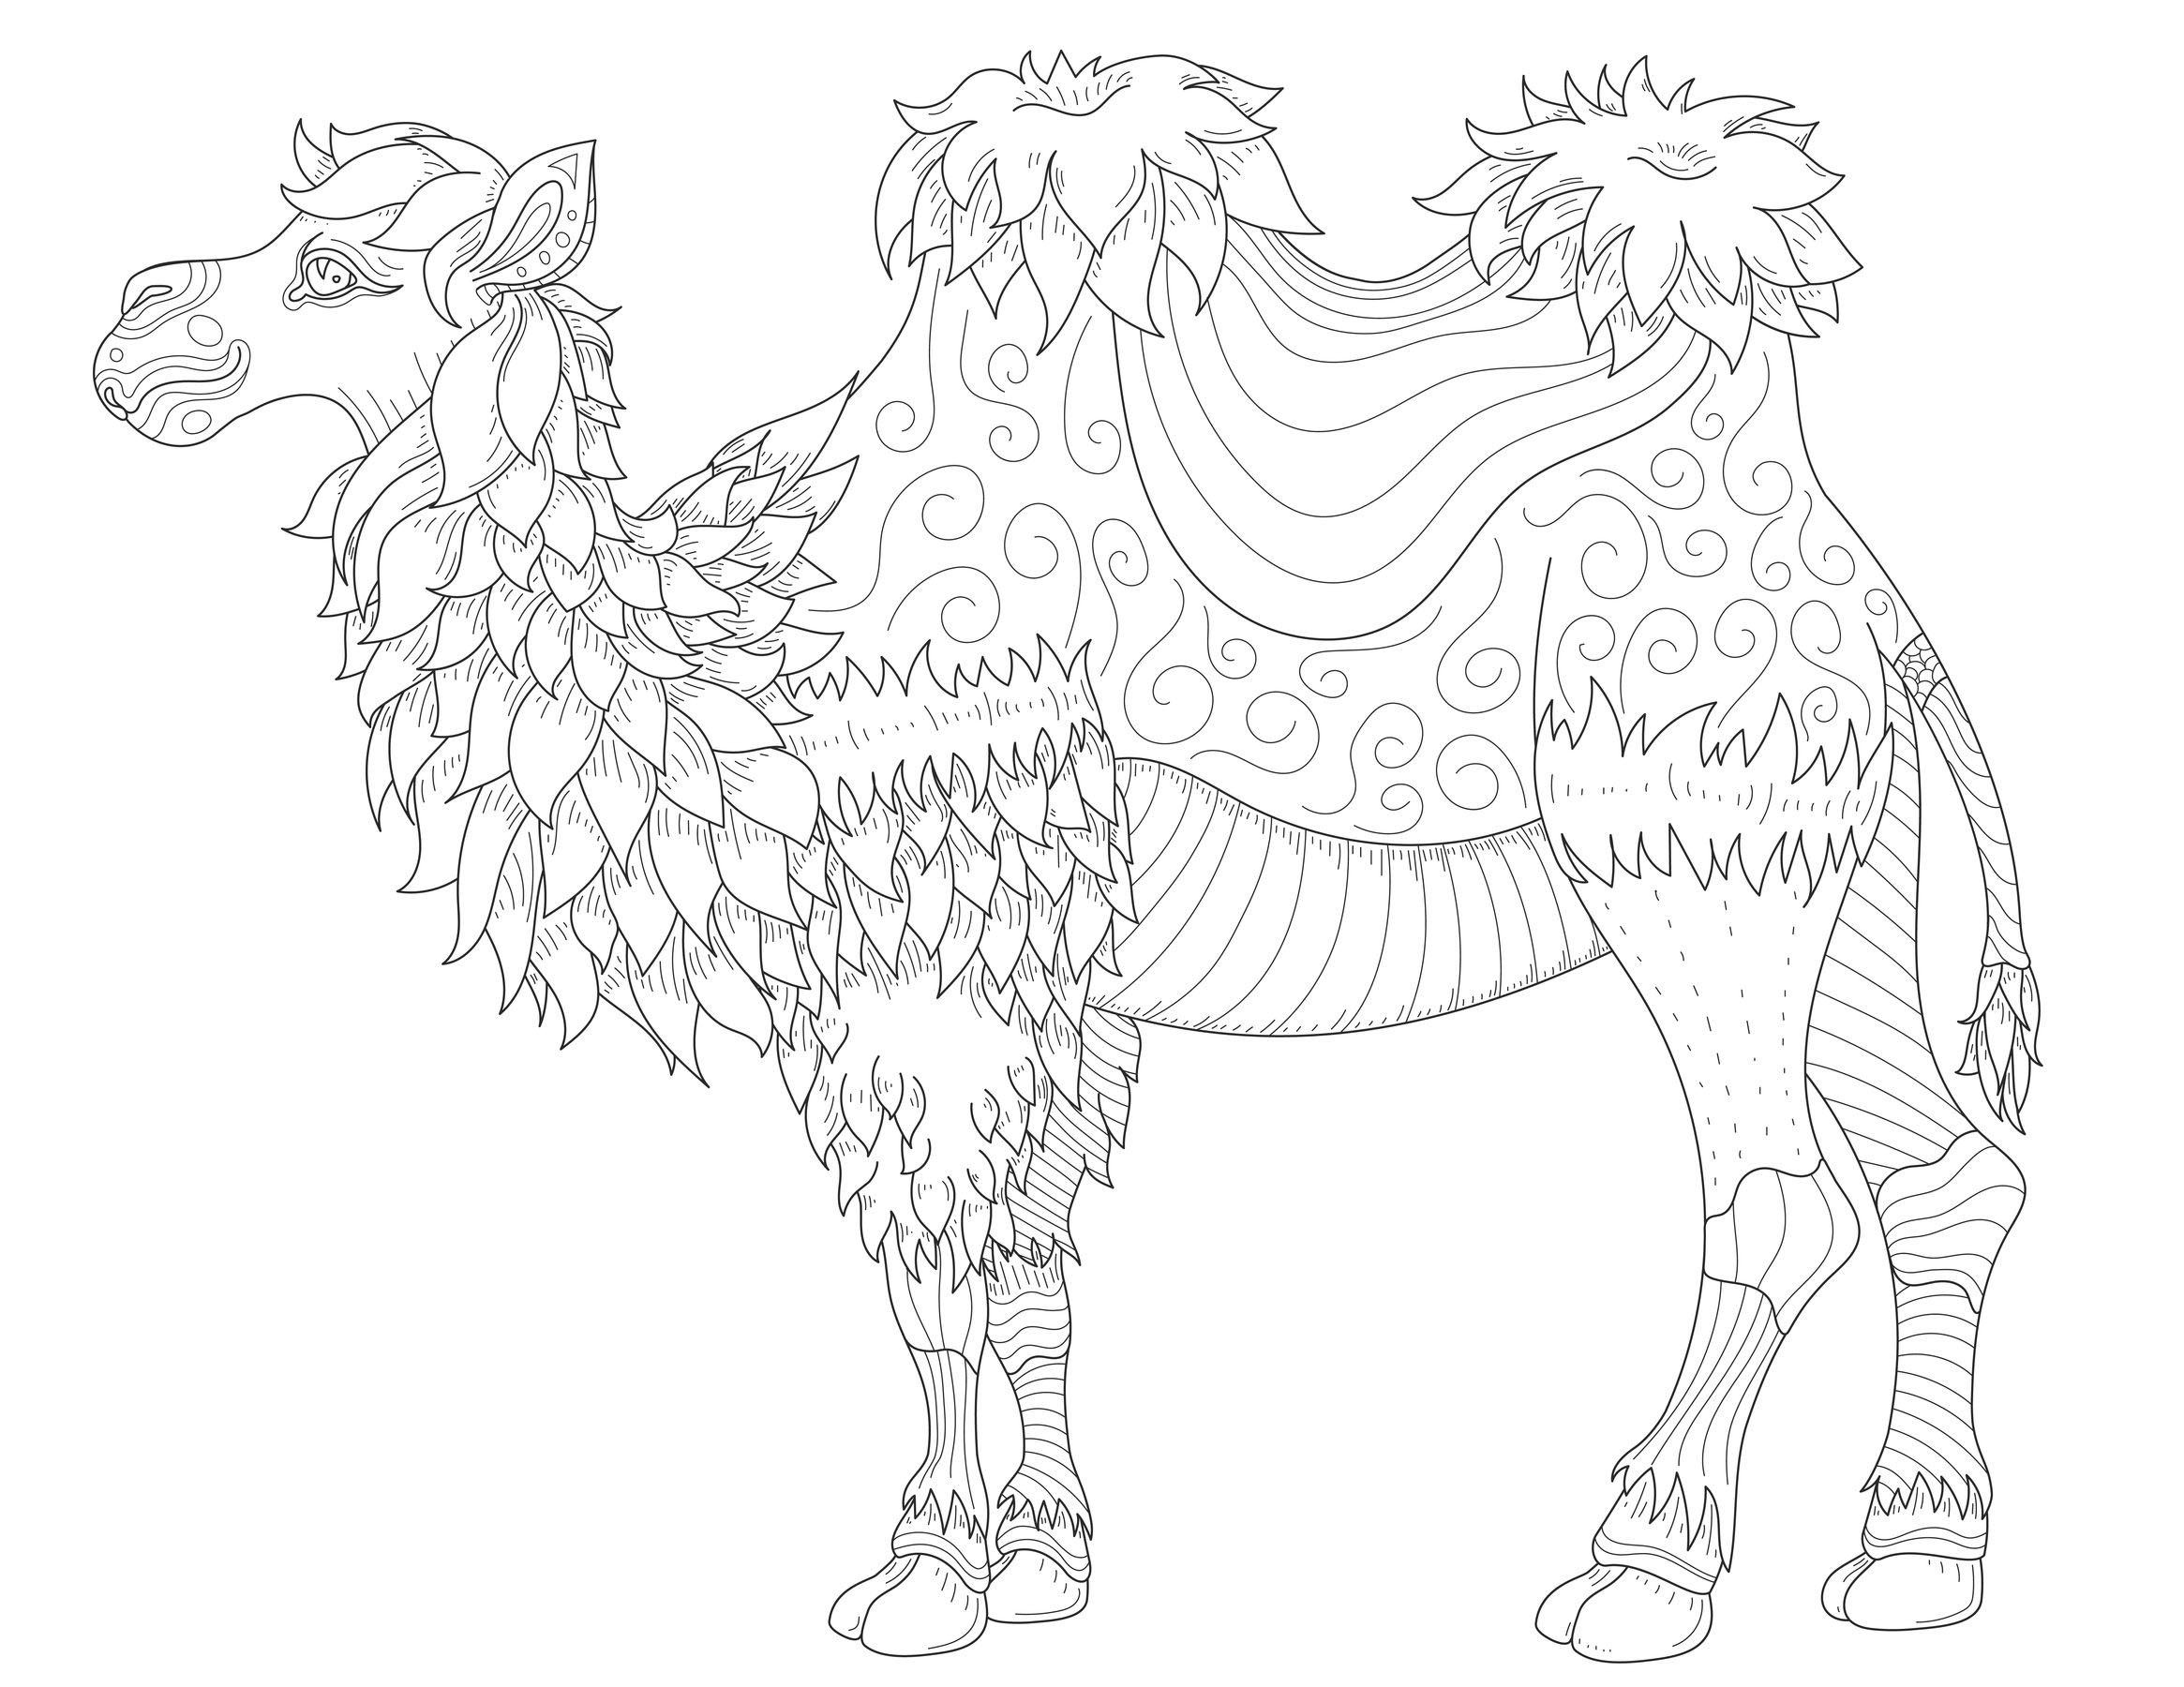 Camel with fine lines - Camels & Dromedaries Adult Coloring Pages